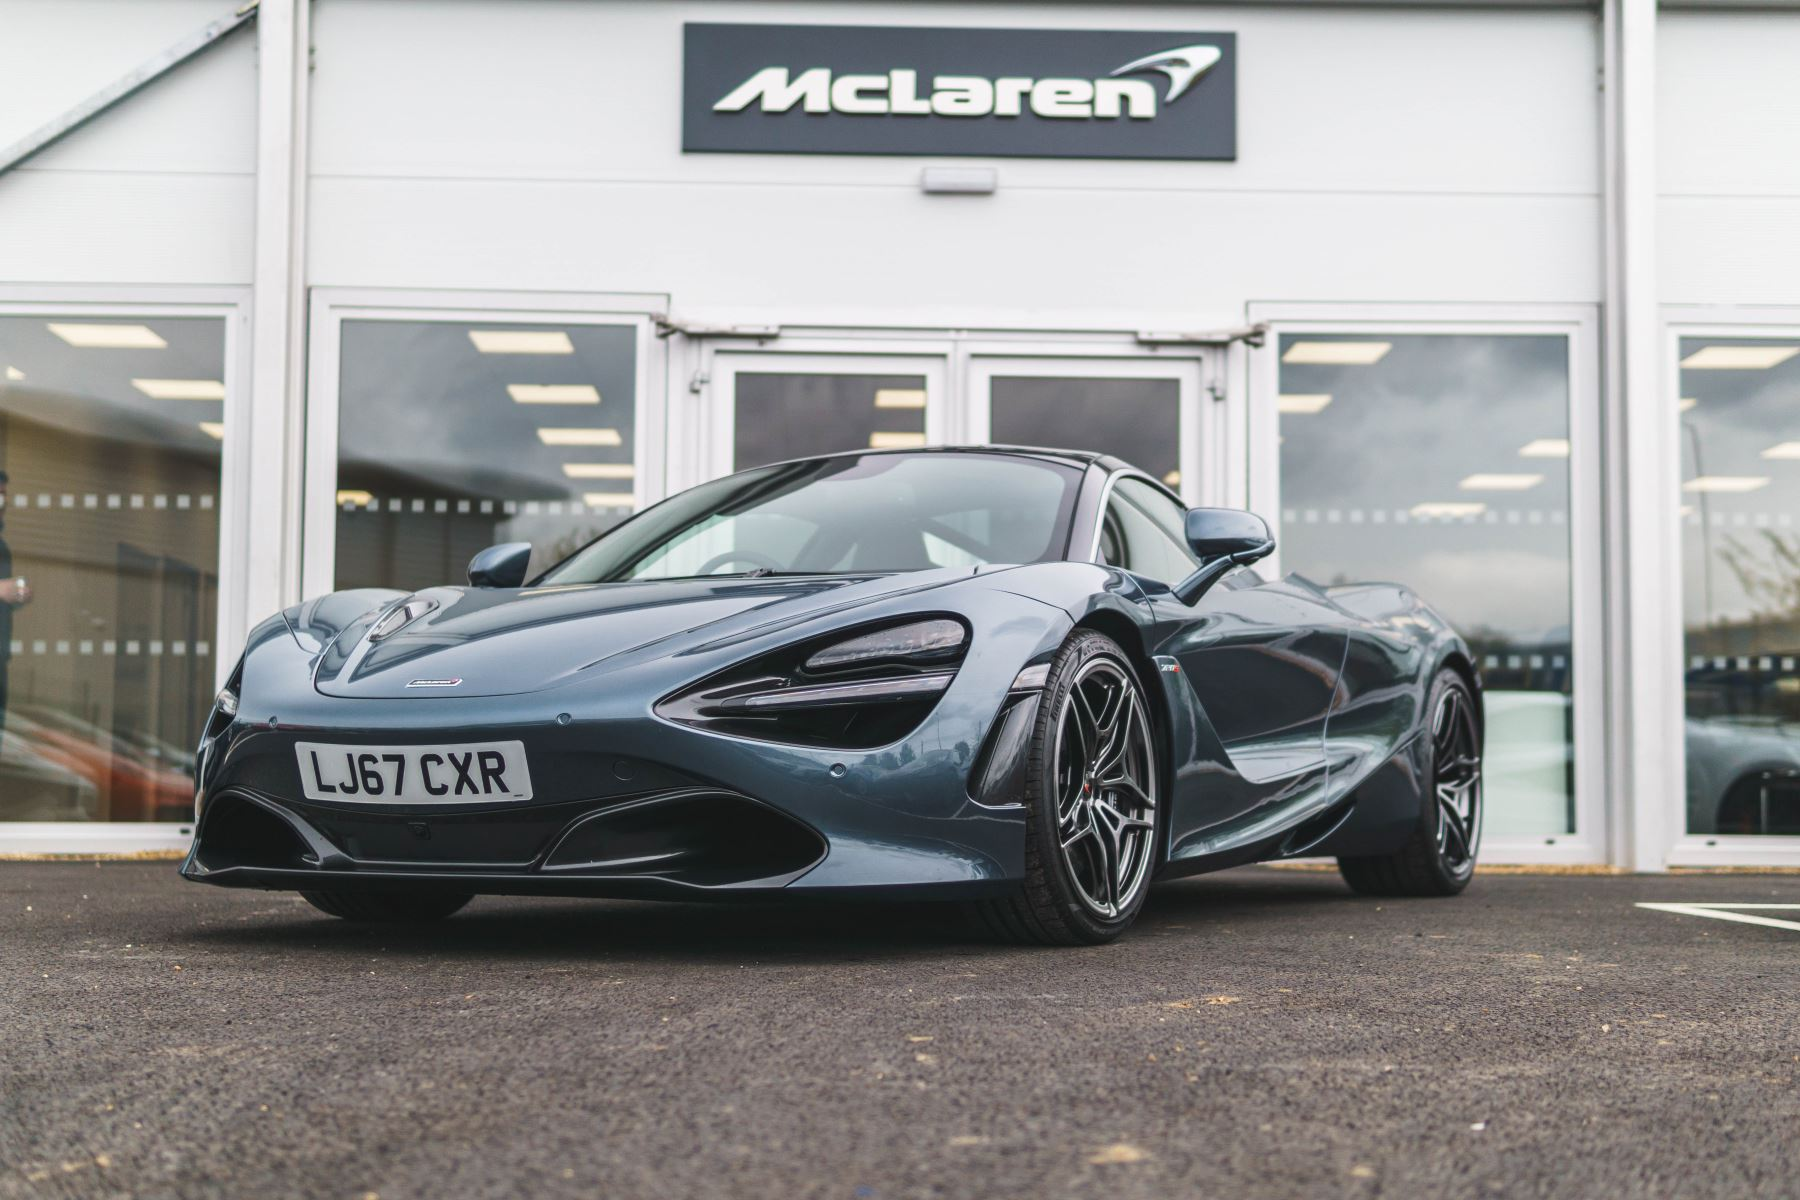 McLaren 720S Luxury 2 door Coupe (2017) image